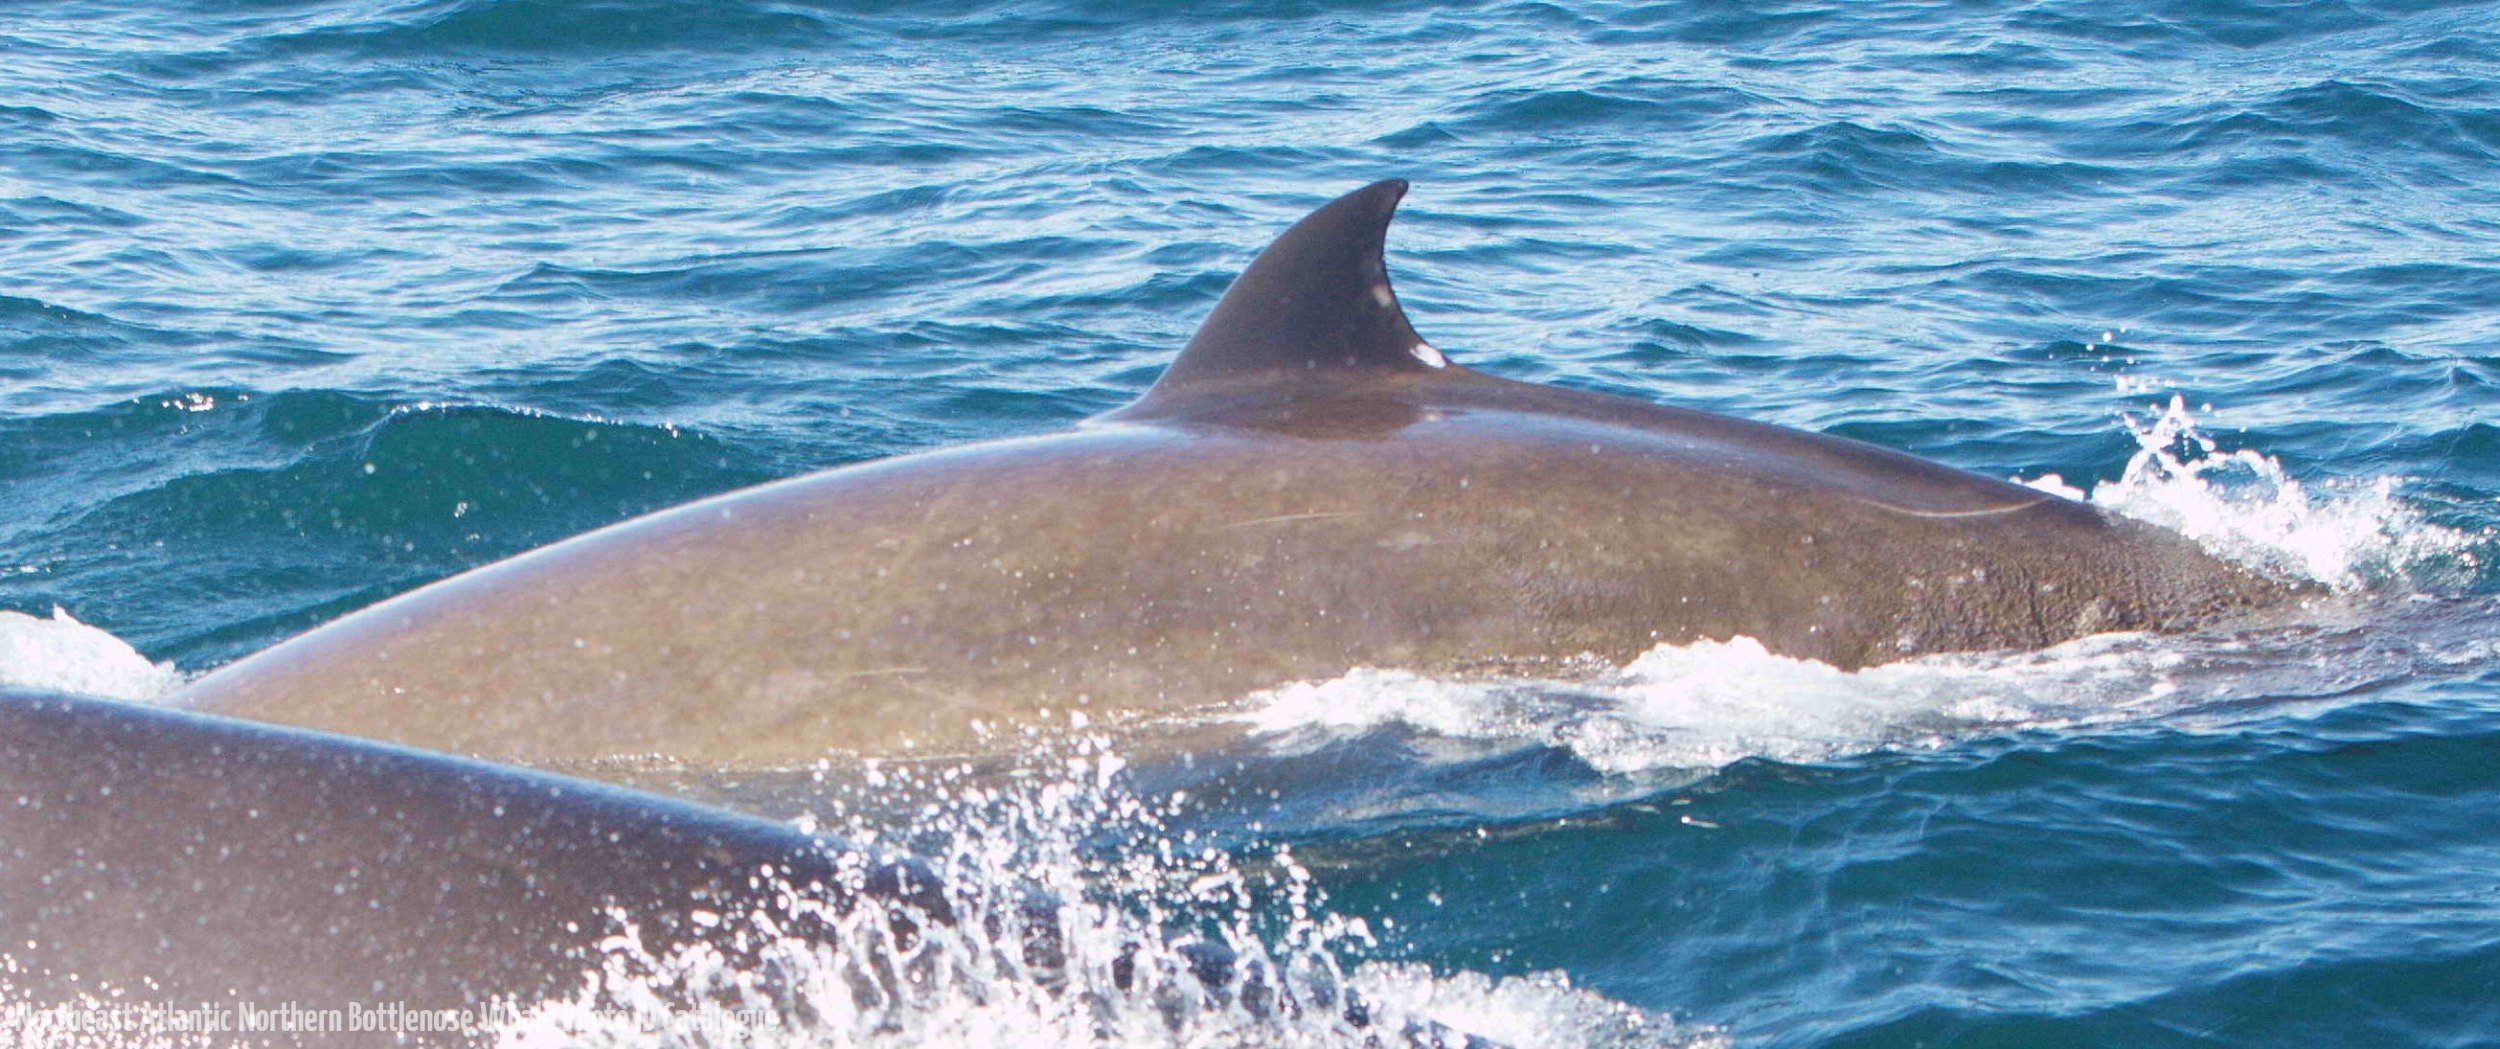 Whale ID: 0053,  Date: 15-06-2014,  Photographer: Saana Isojunno